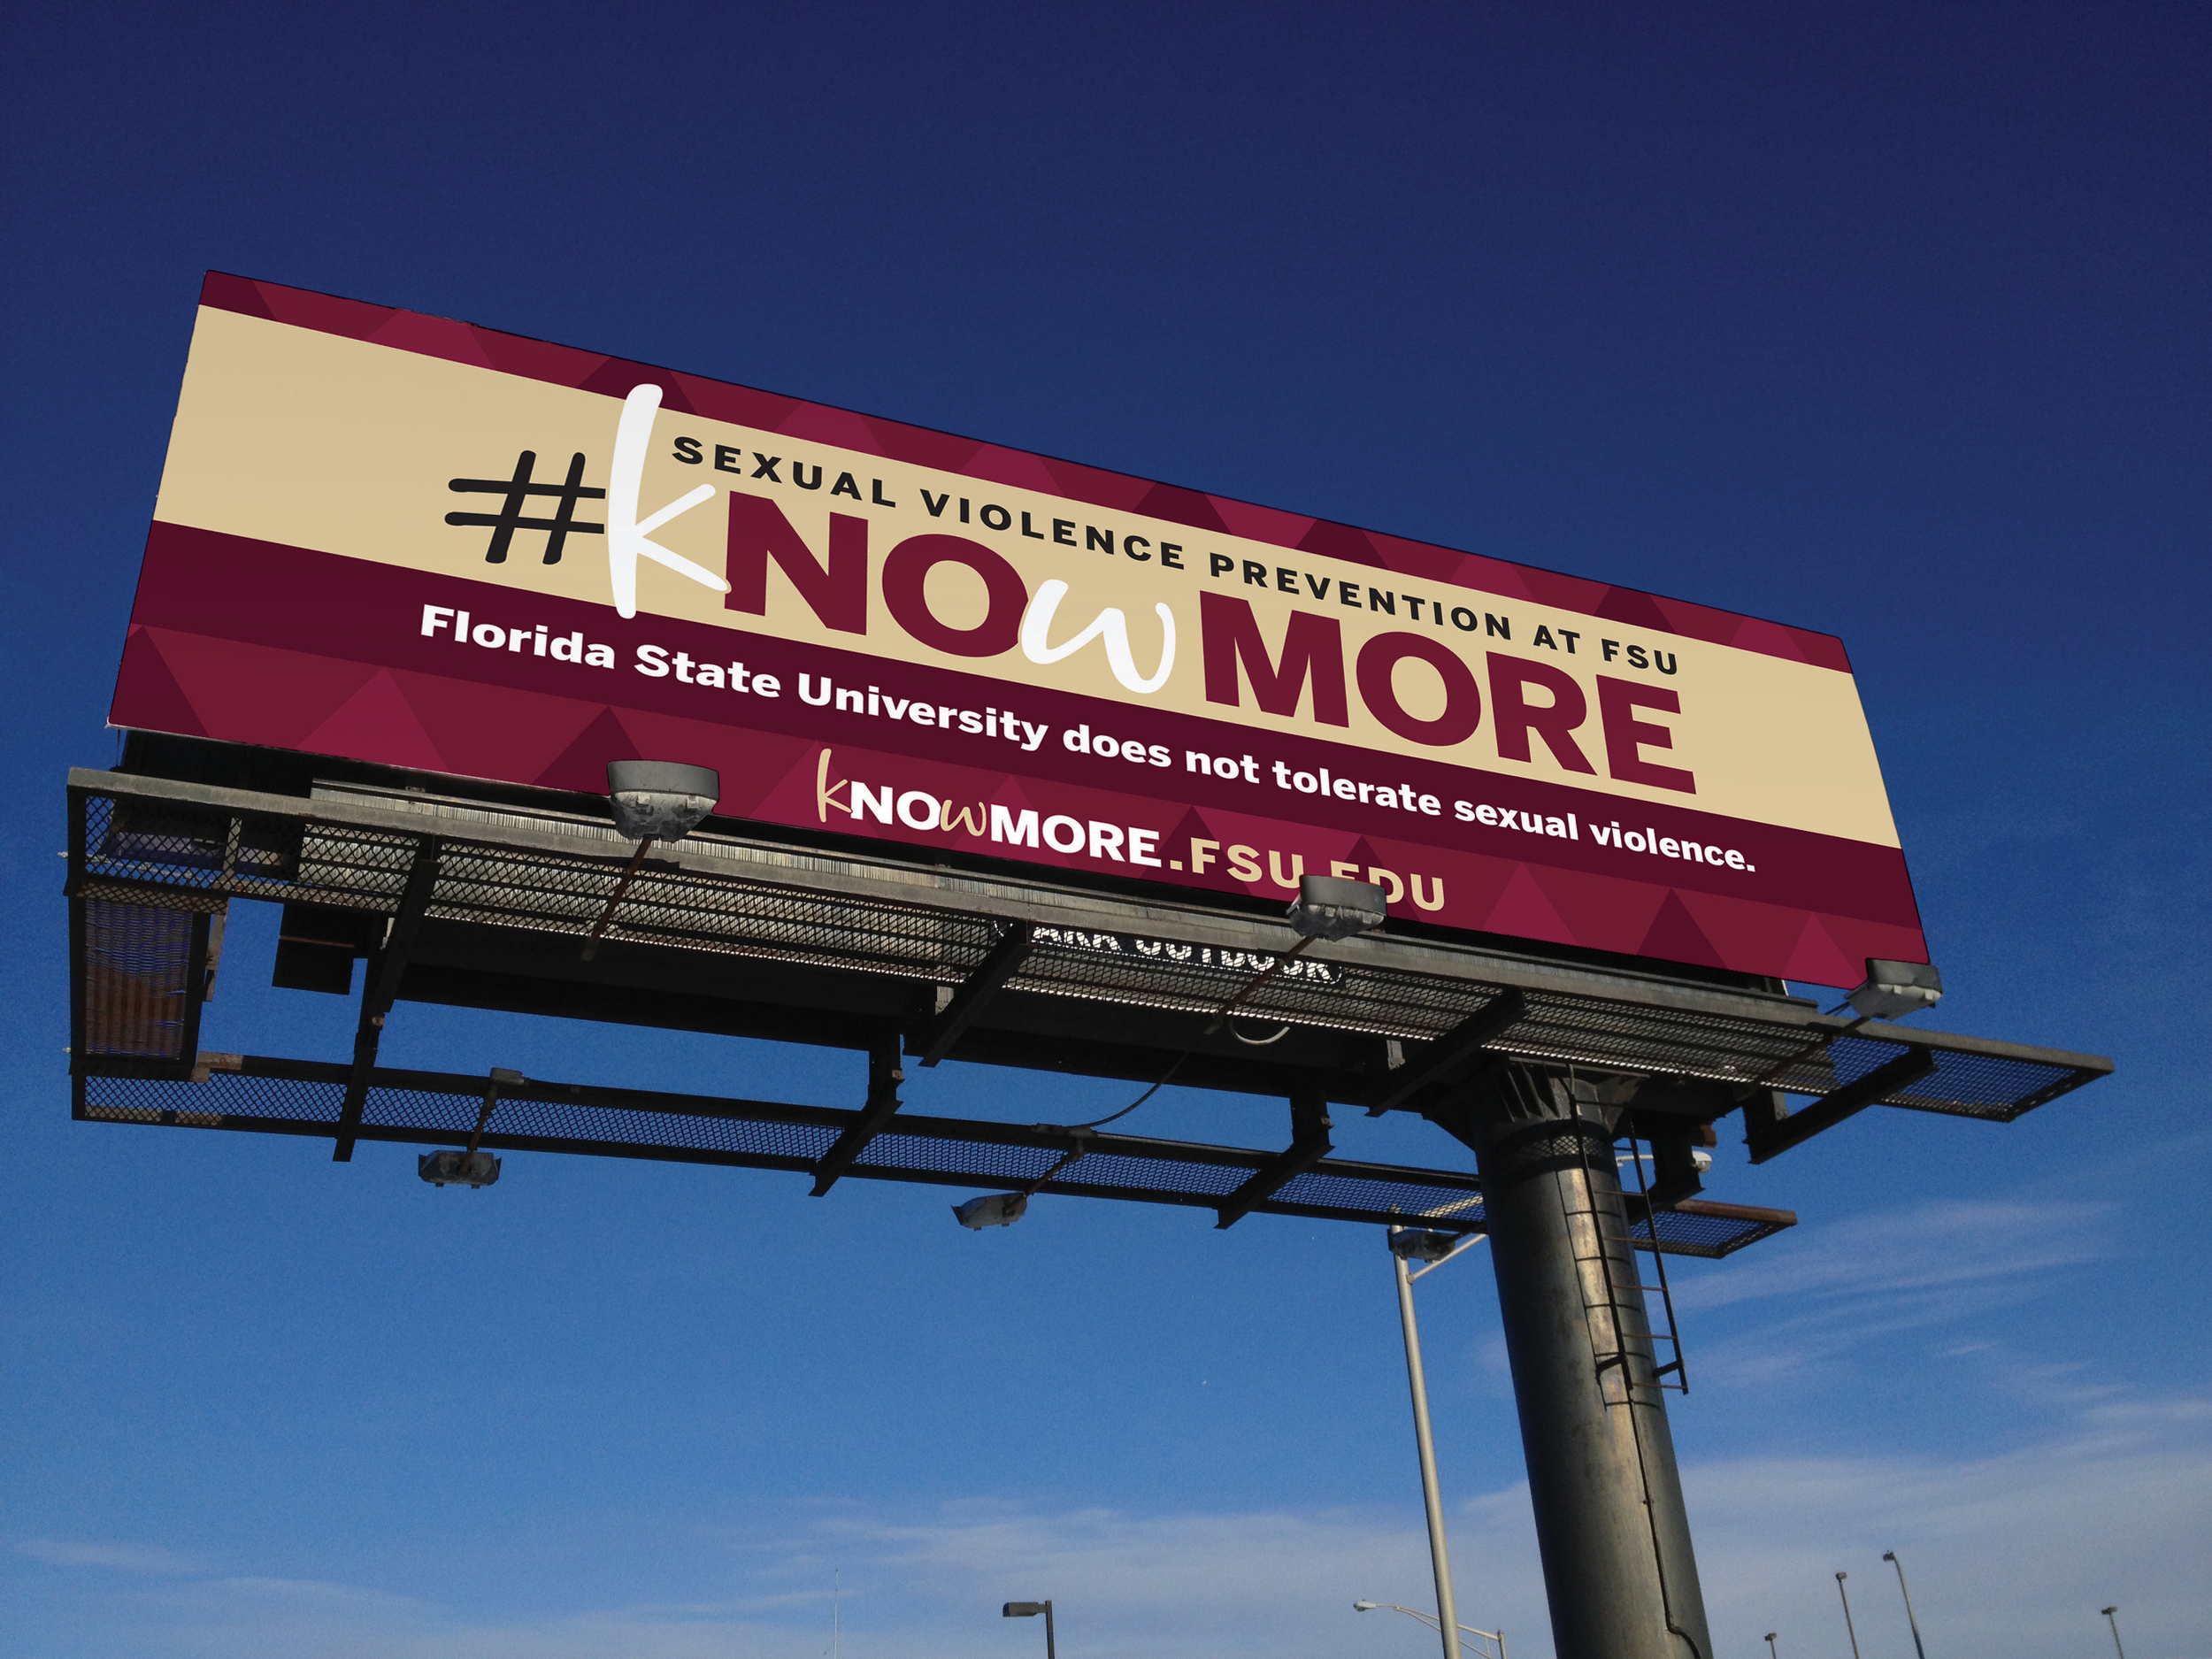 FSU Sexual Violence Prevention Billboard